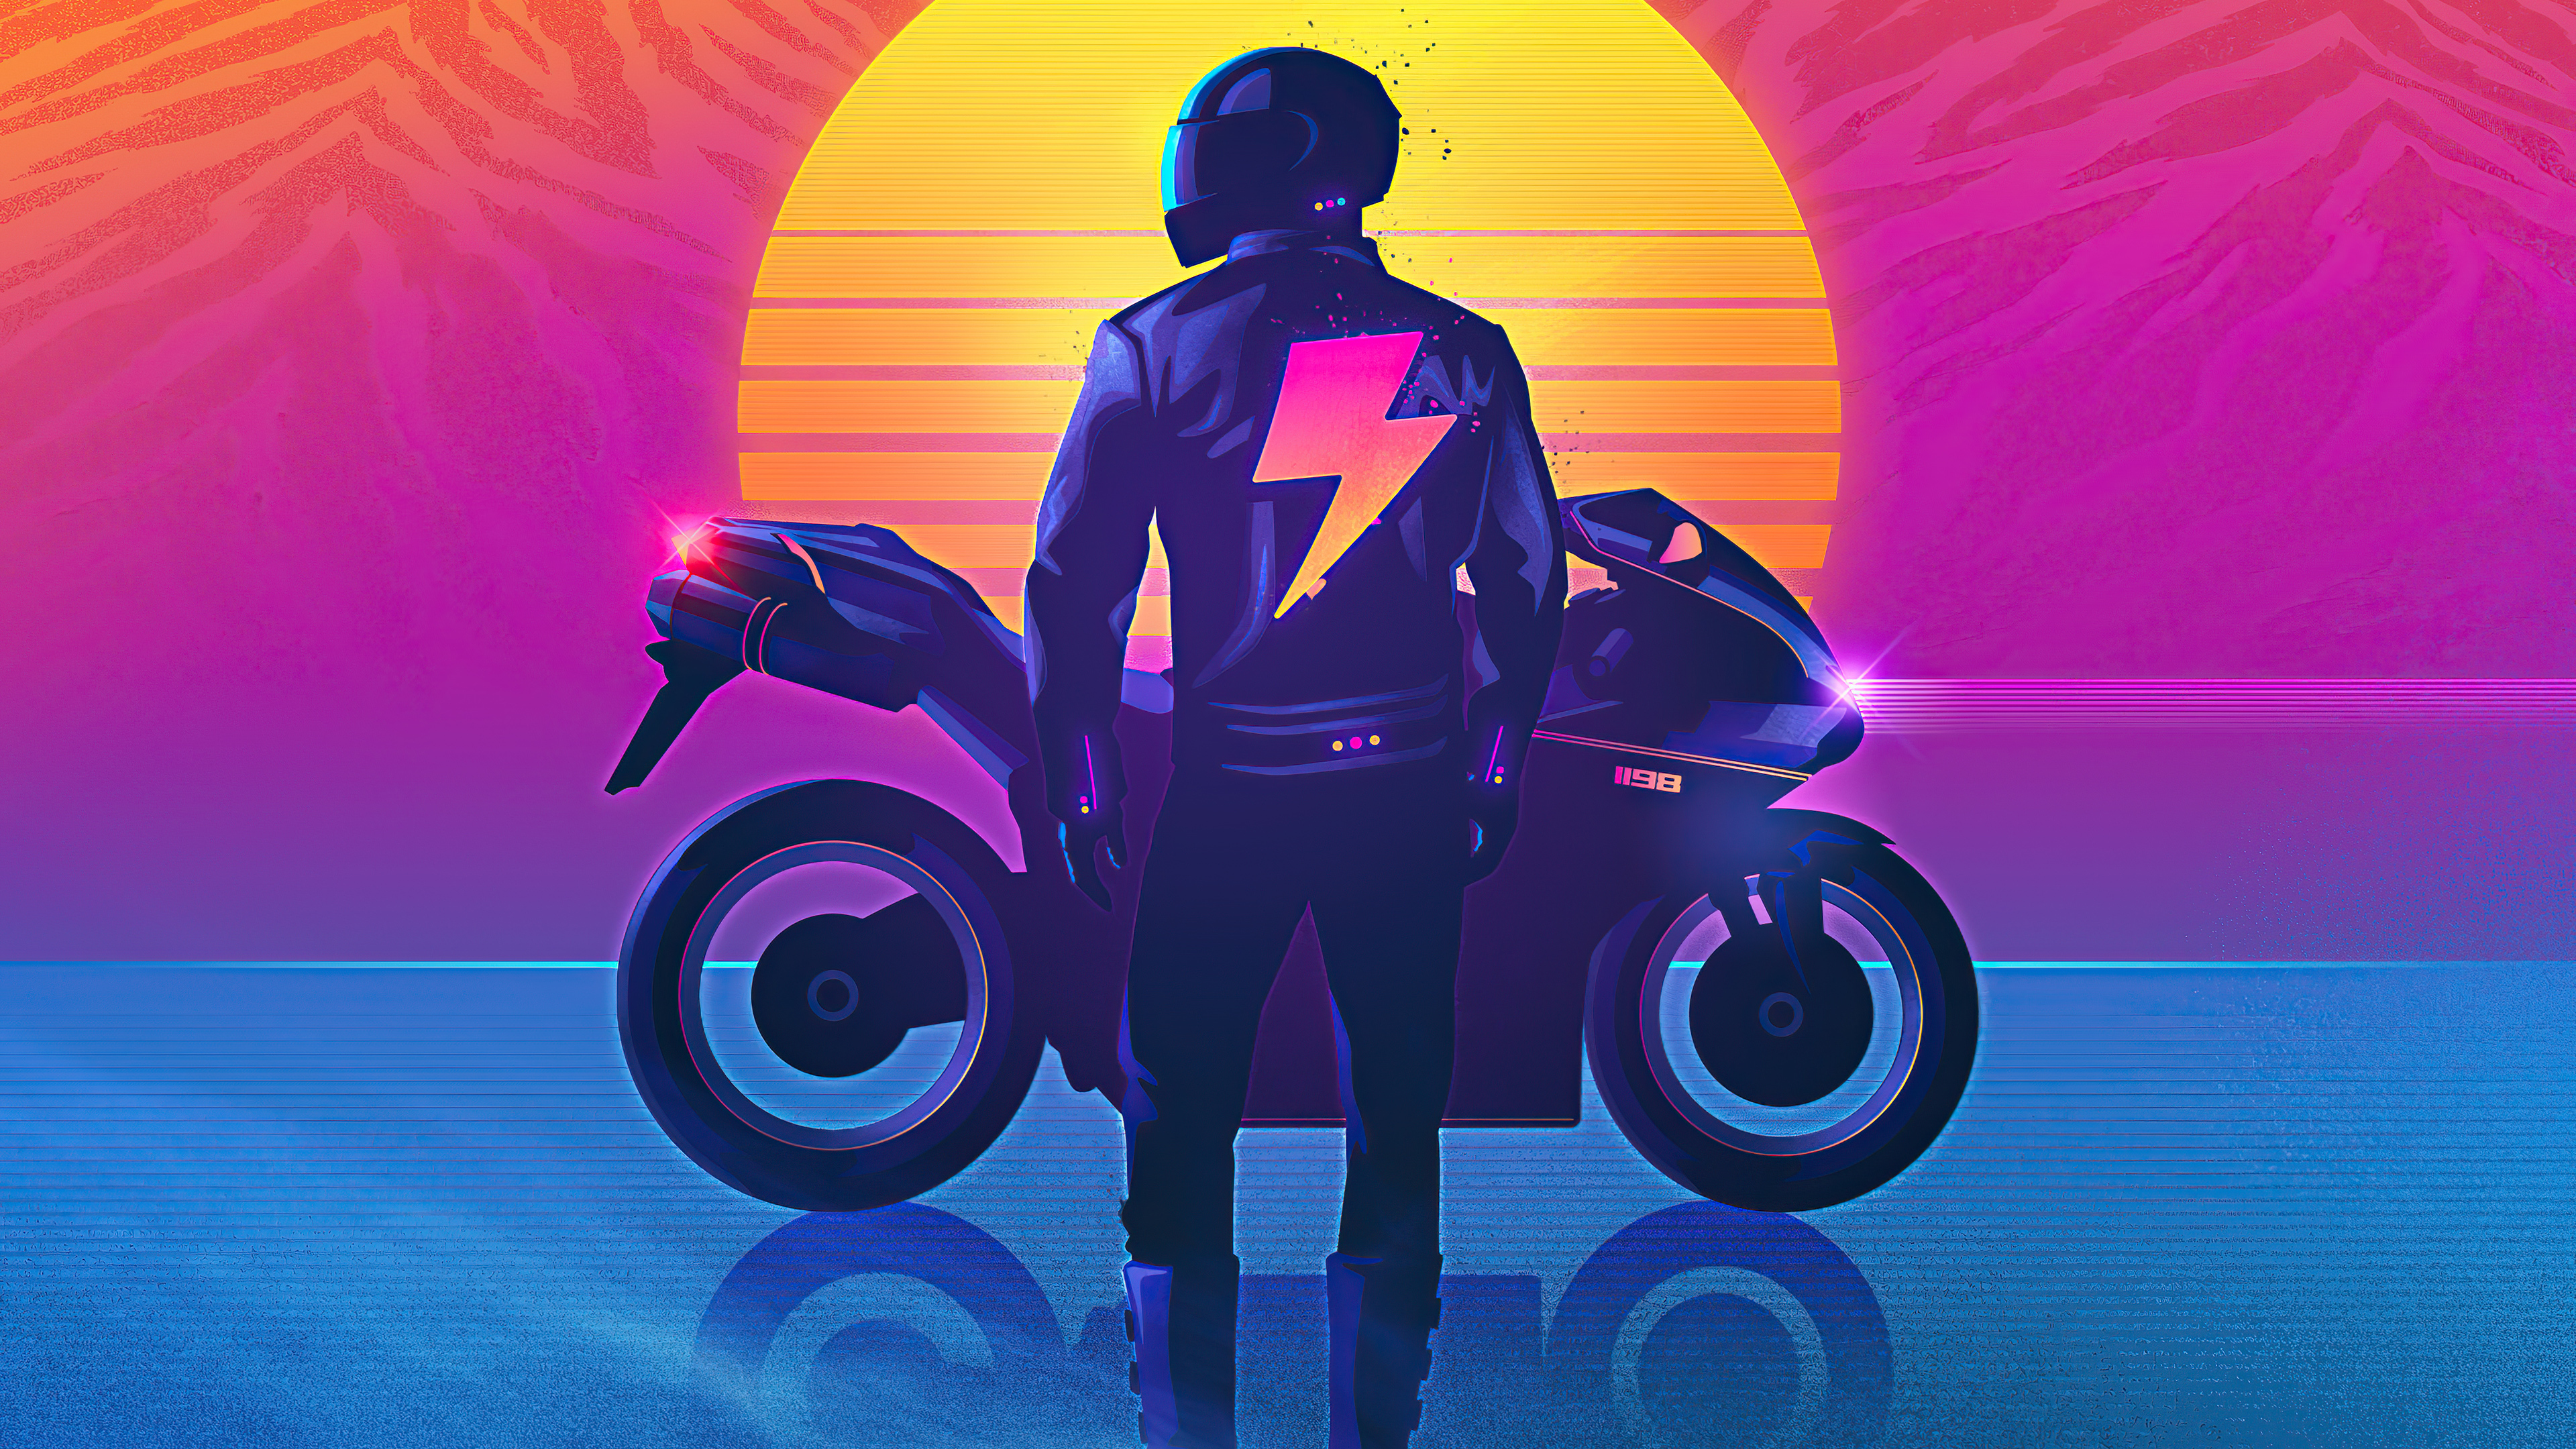 the-rider-outrun-4k-nz.jpg